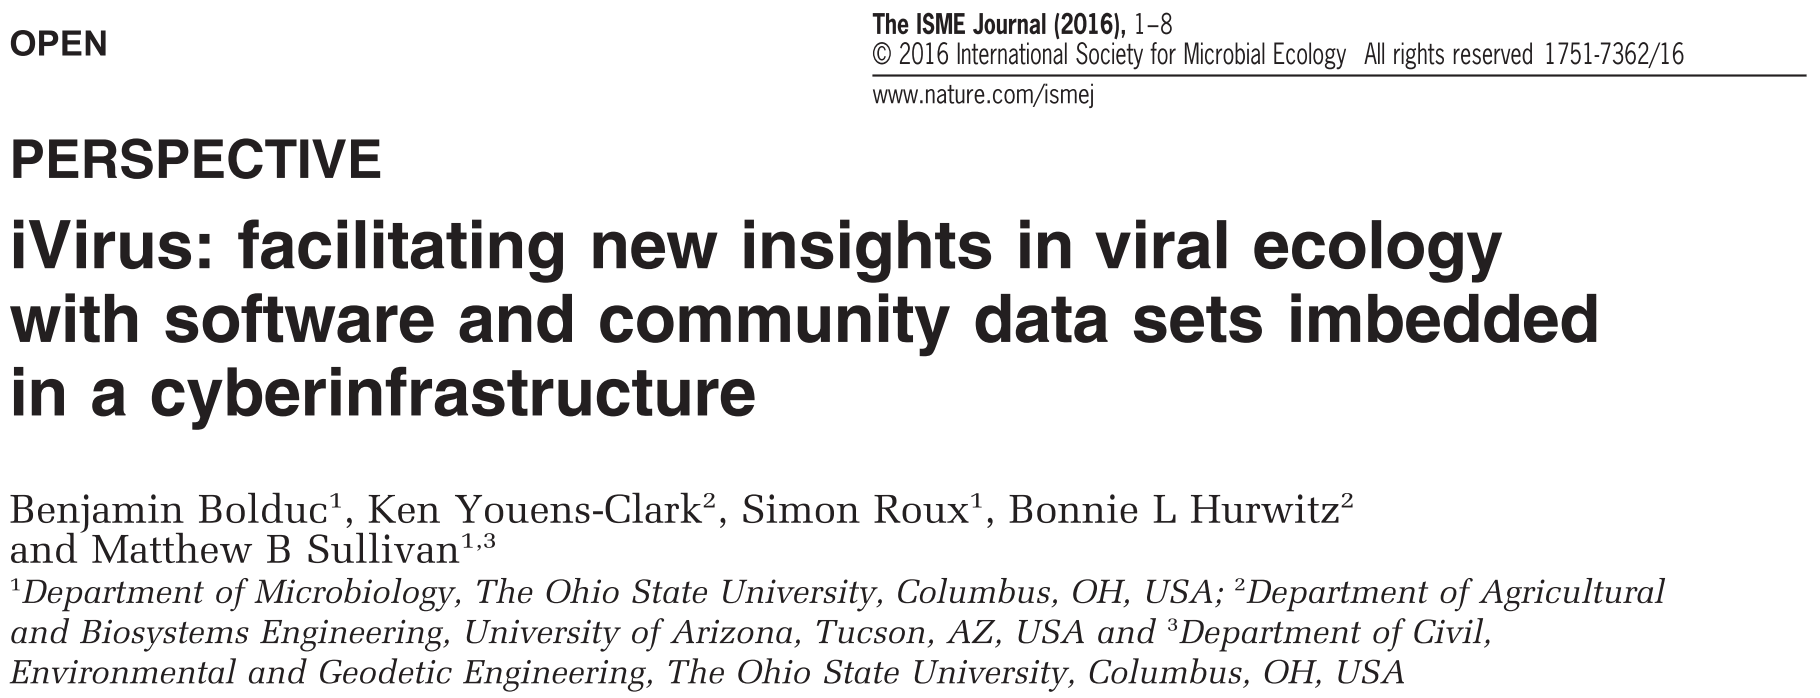 Screenshot of iVirus publication title - iVirus: facilitating new insights in viral ecology with software and community data sets imbedded in a cyberinfrastructure.